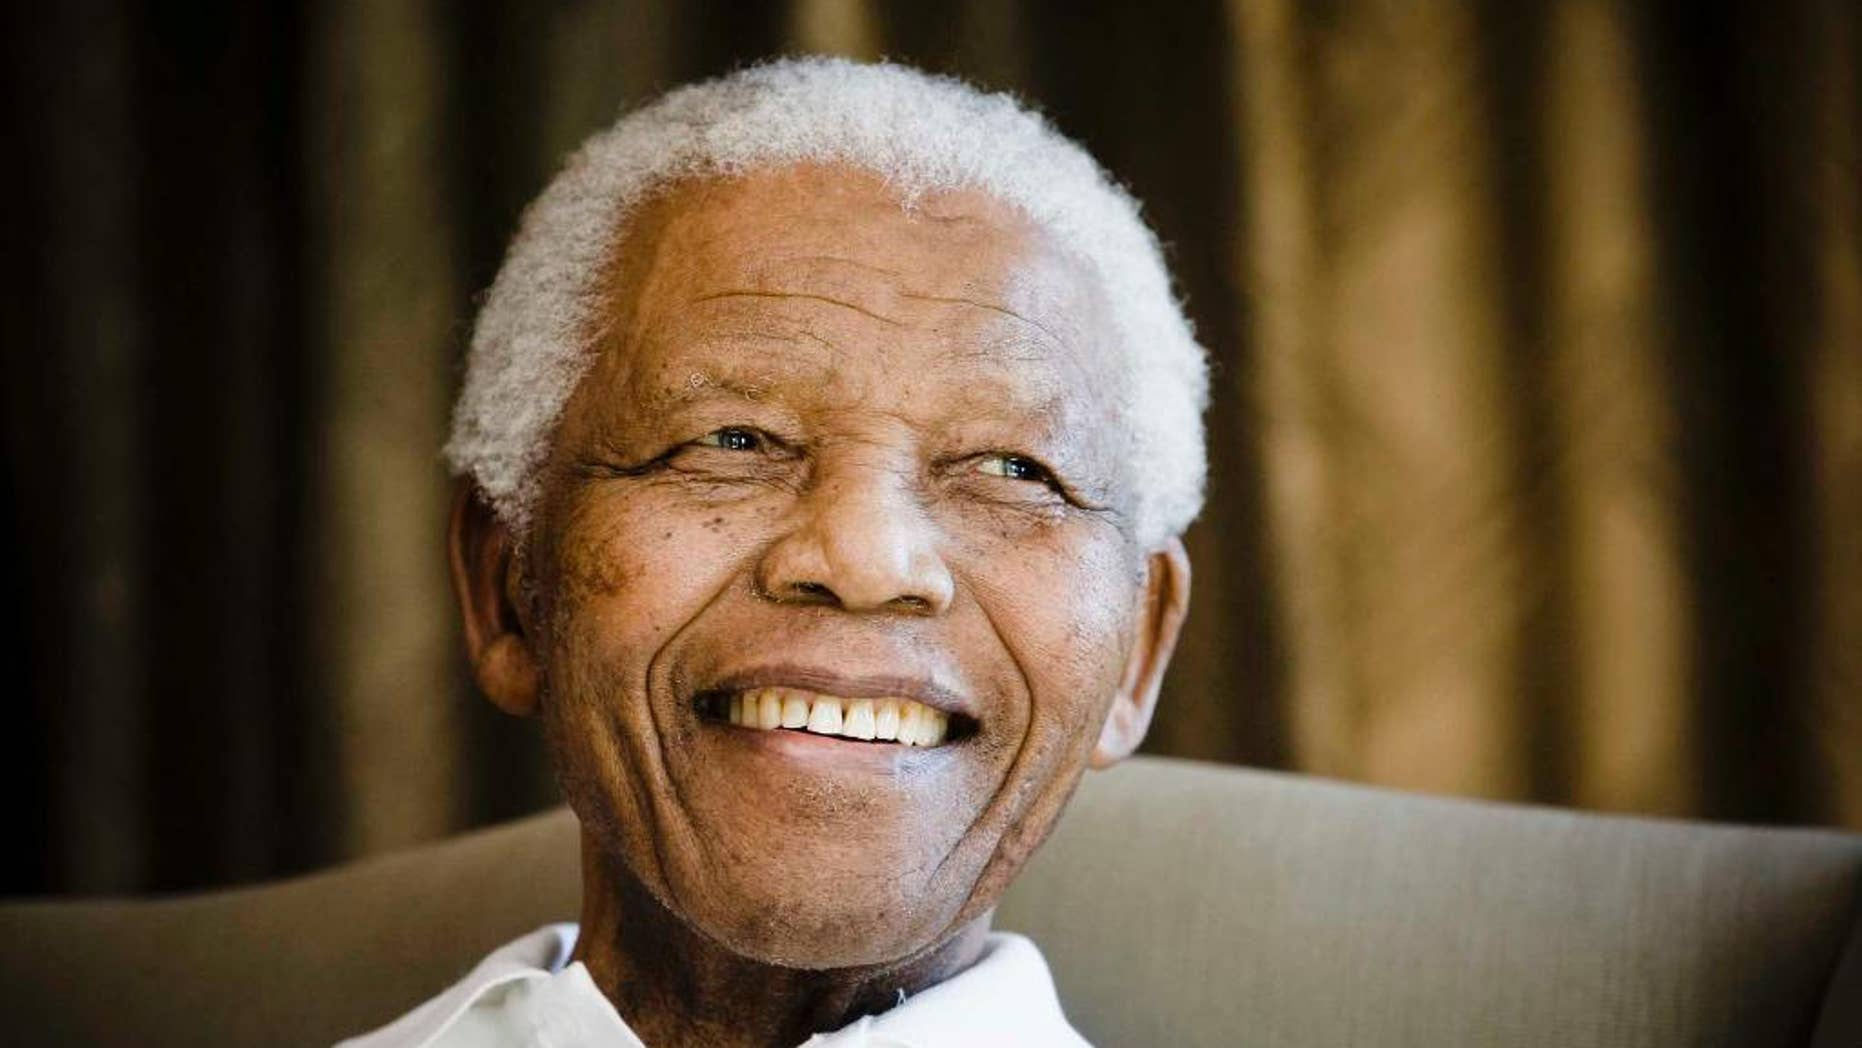 June 2, 2009: Former South African President Nelson Mandela smiles during a meeting with a group of American and South African students in Johannesburg.